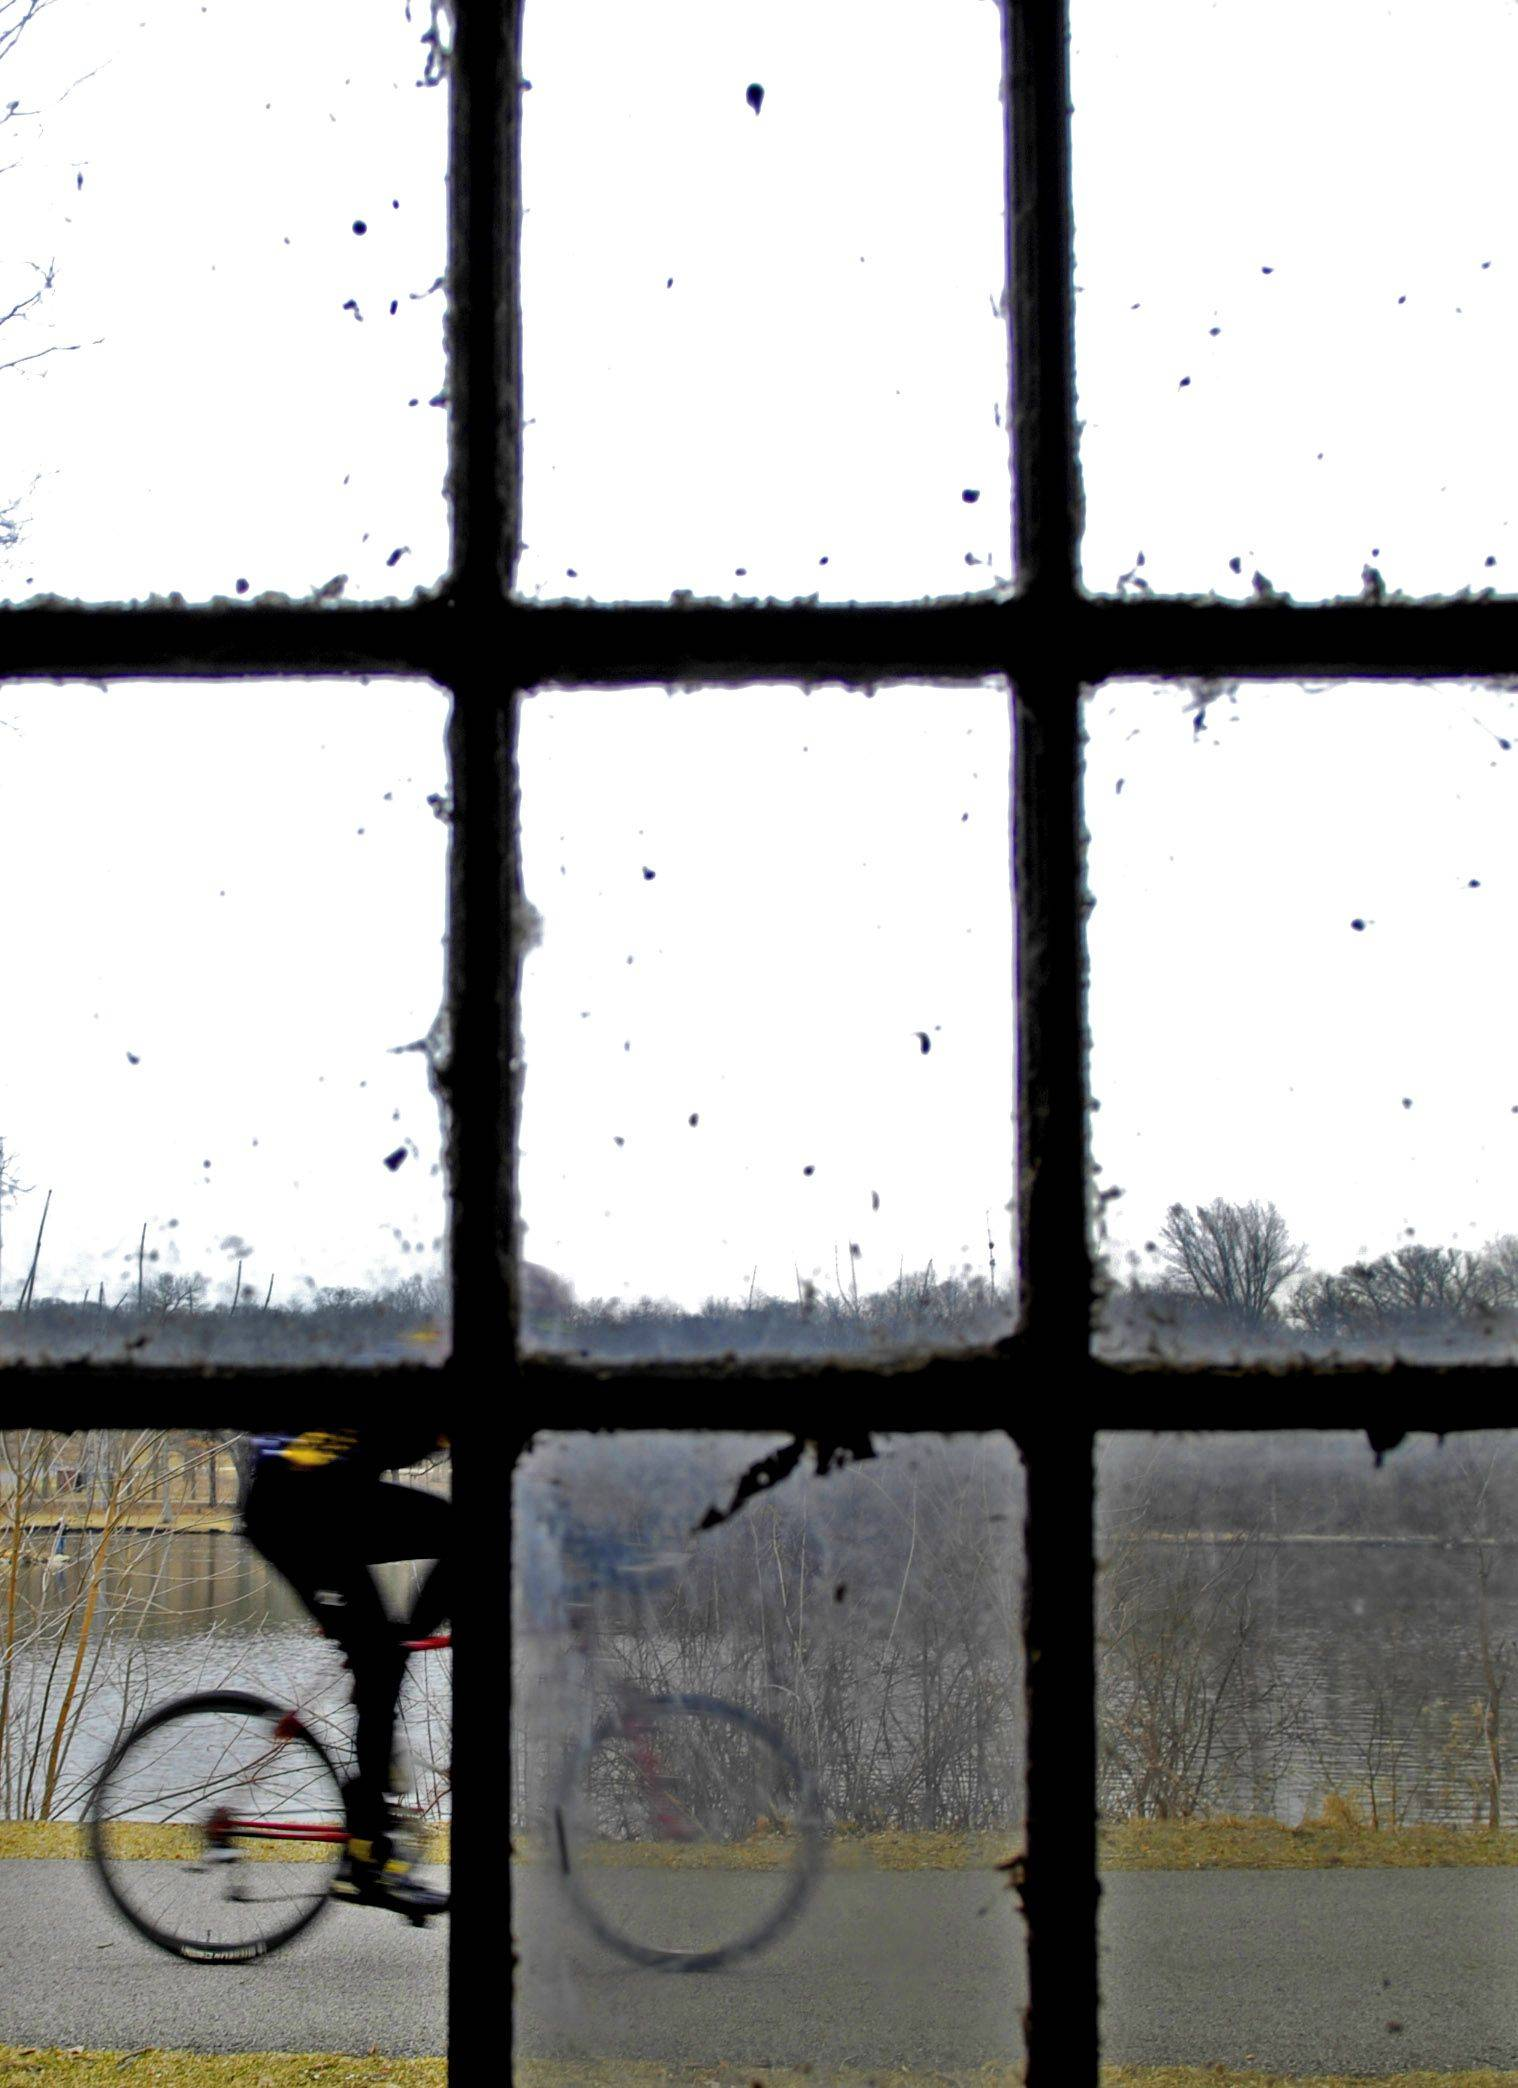 A cyclist is seen speeding past a broken window at the Riverbank Villa Station at Fabyan Forest Preserve in Geneva Tuesday. The building is down the hill from the Fabyan Villa Museum, home to George and Nelle Fabyan from 1905 thru 1939.